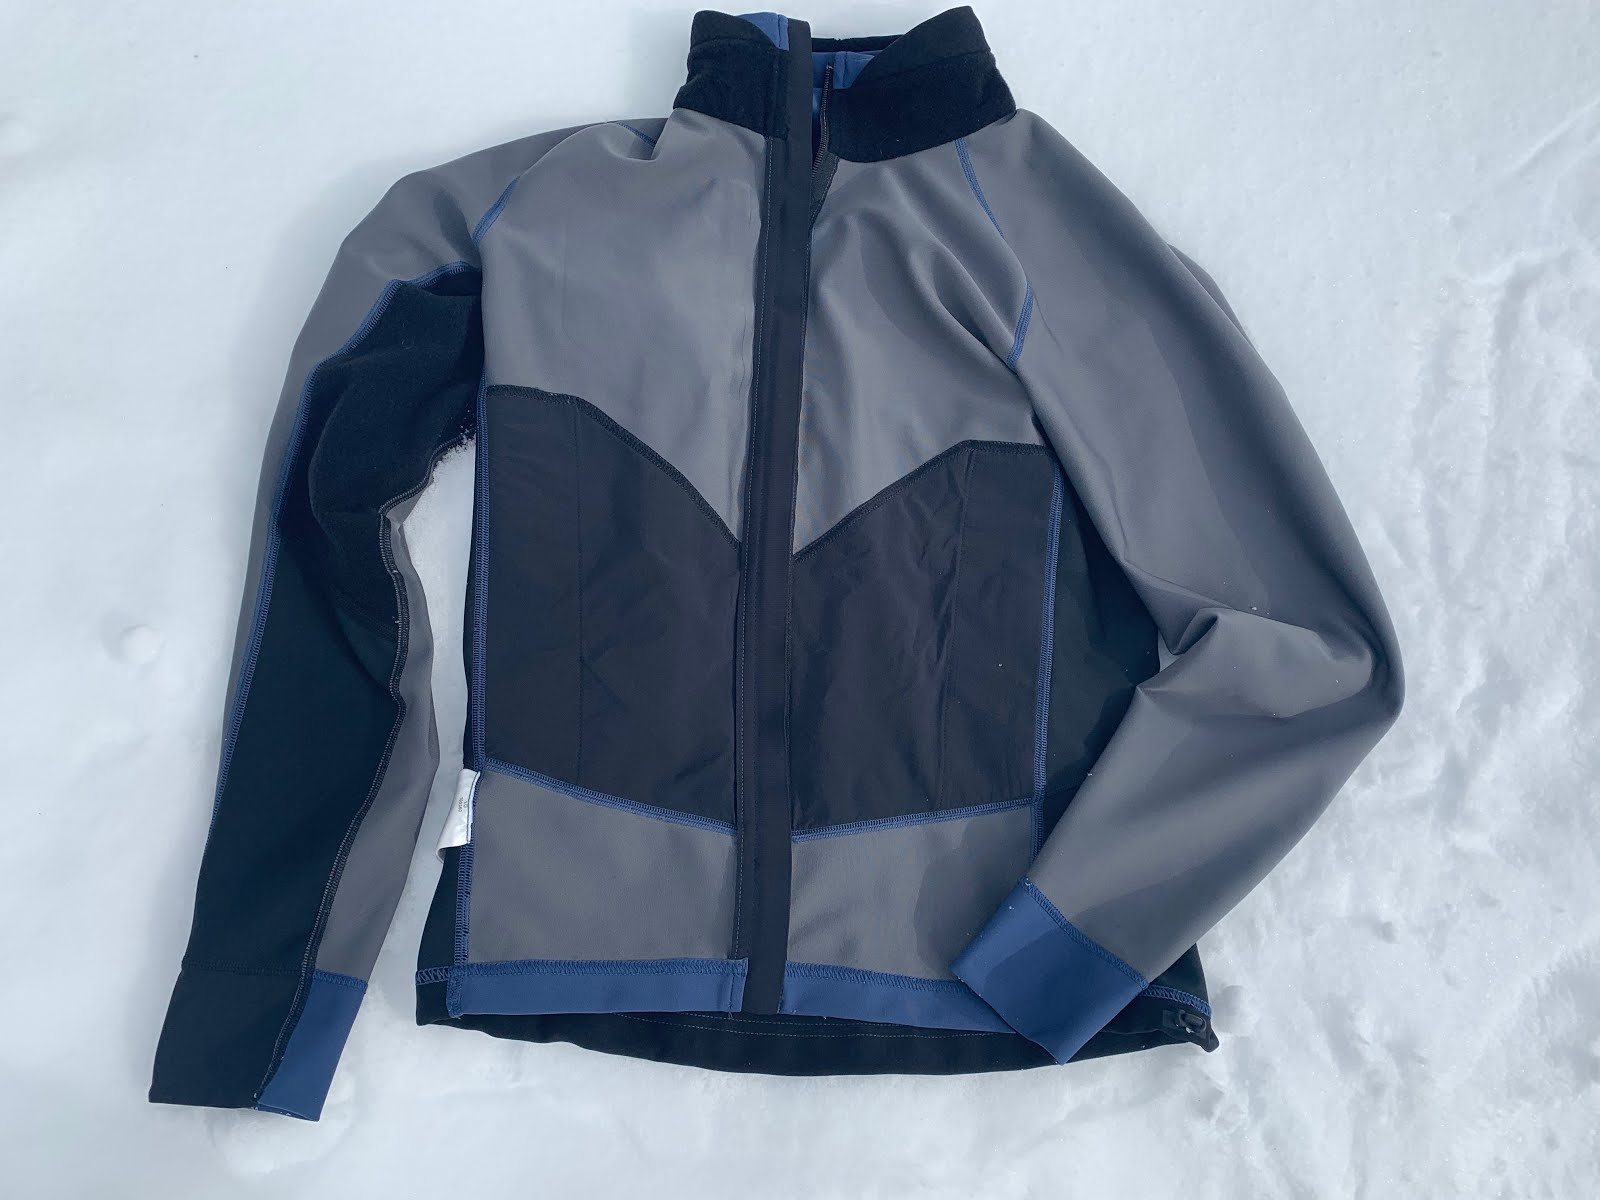 b0391ecb48f95 Jacket Inside Out: Light Gray areas and behind black lower chest pocket  lining are Windstopper